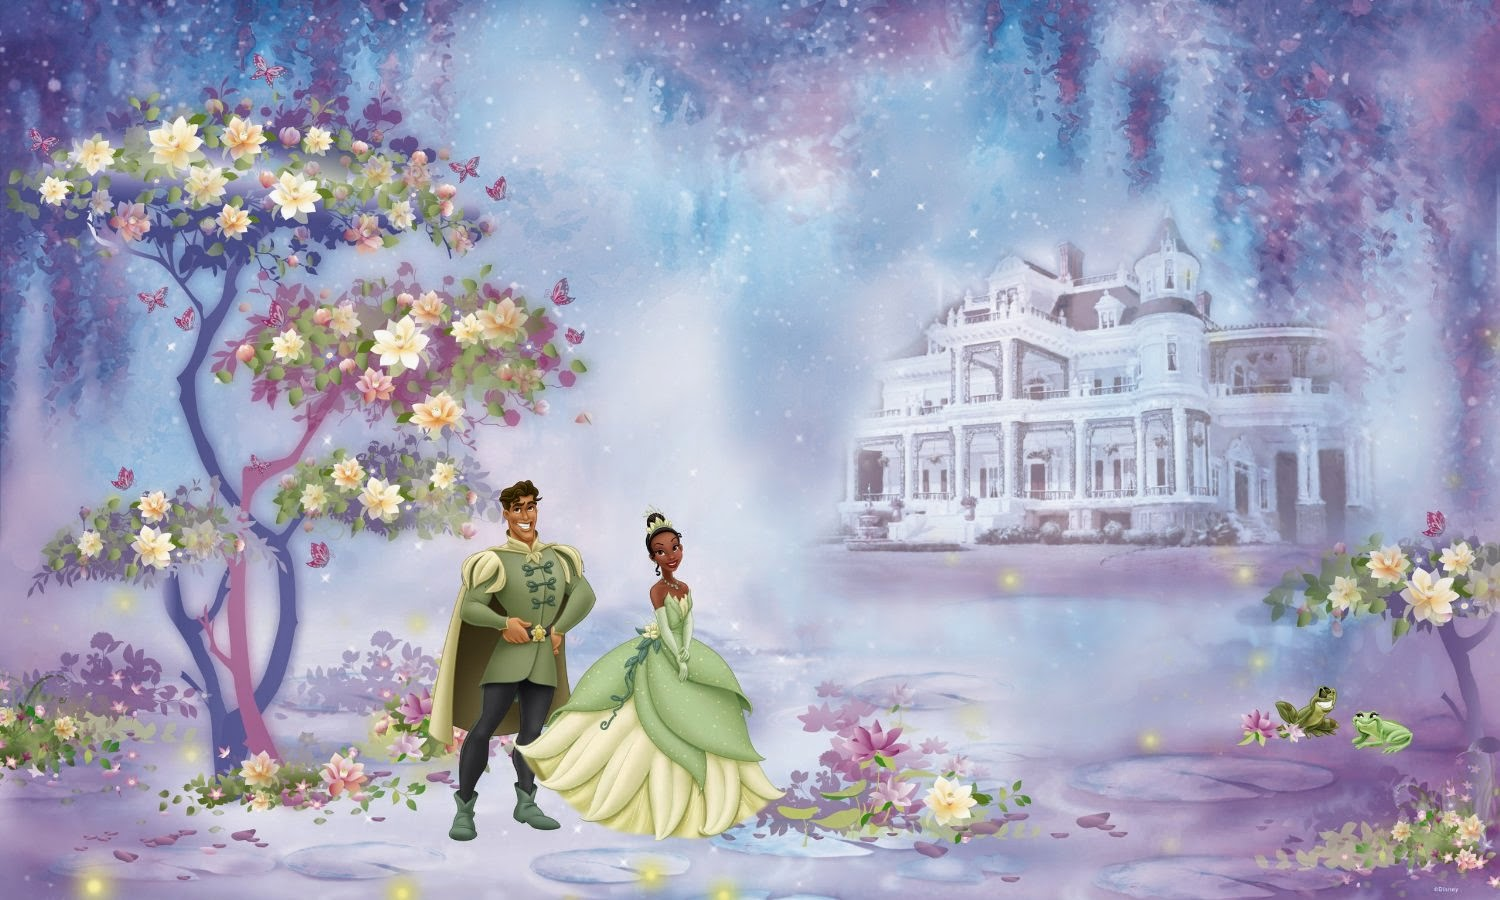 Disney The Princess And The Frog 6 Foot By 10 5 Foot Prepasted Wall Mural